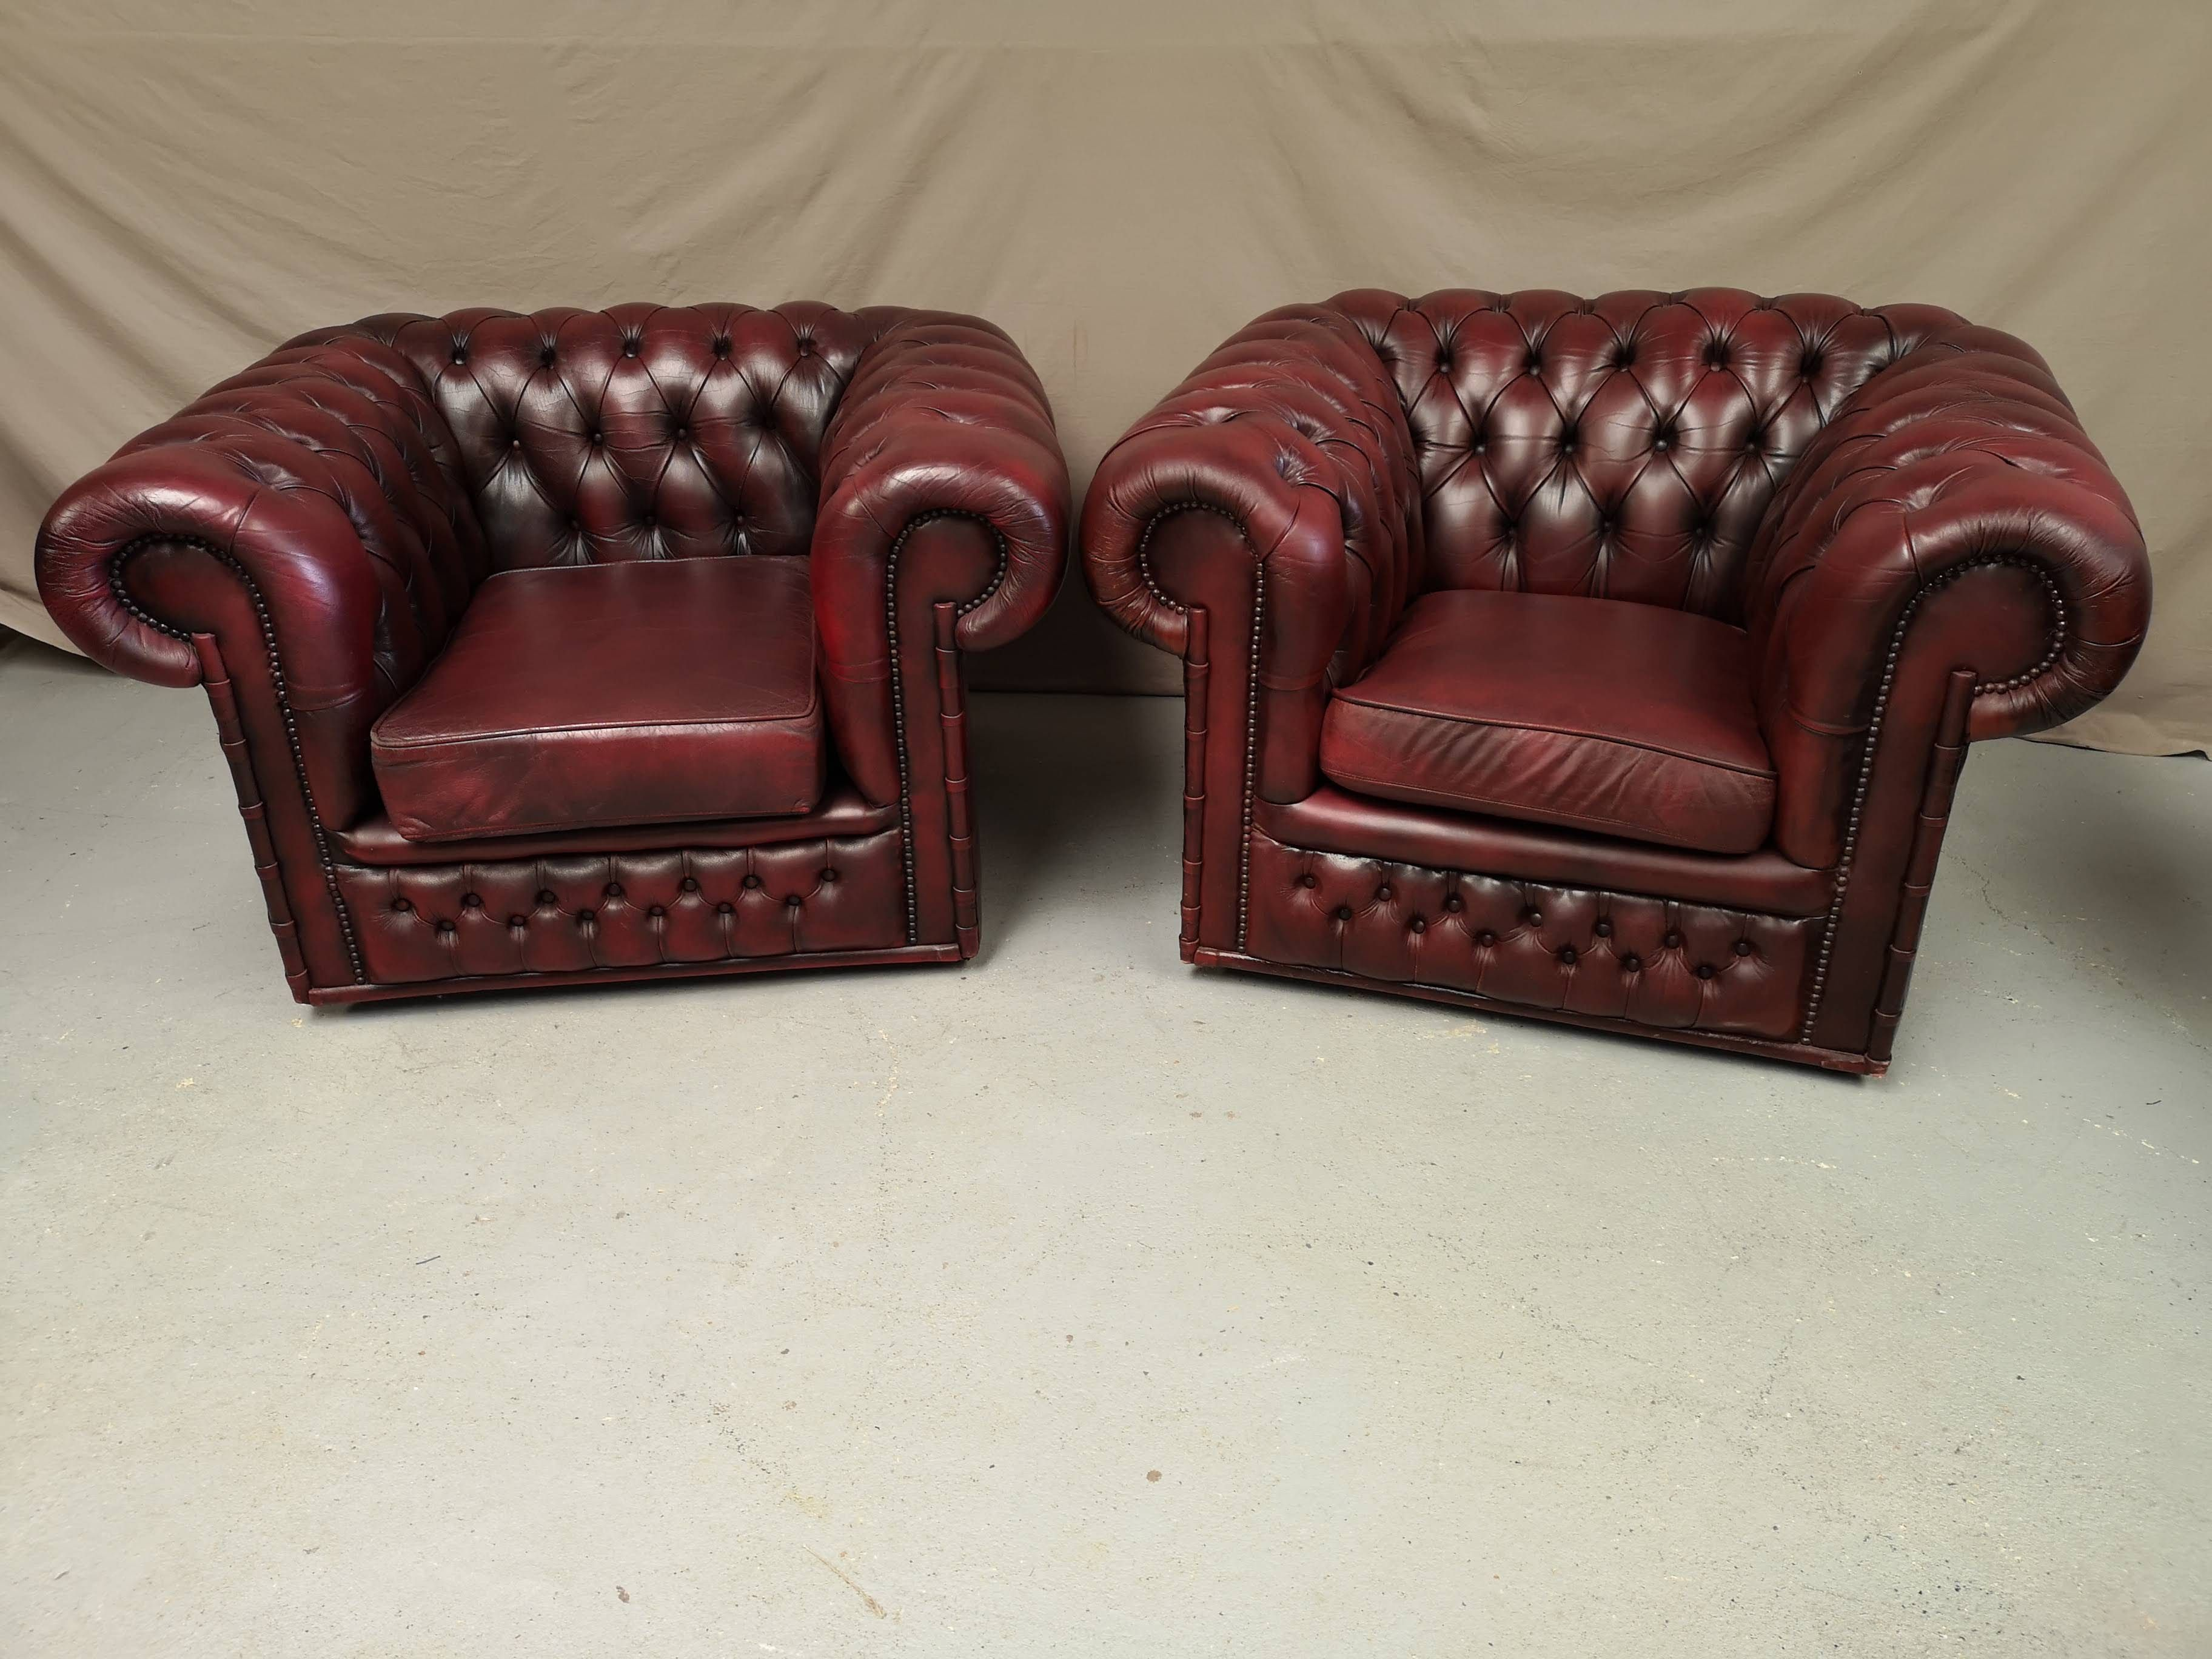 Fauteuils Chesterfield Cuir Bordeaux Fauteuil Chesterfield Chesterfield Decoration Vintage